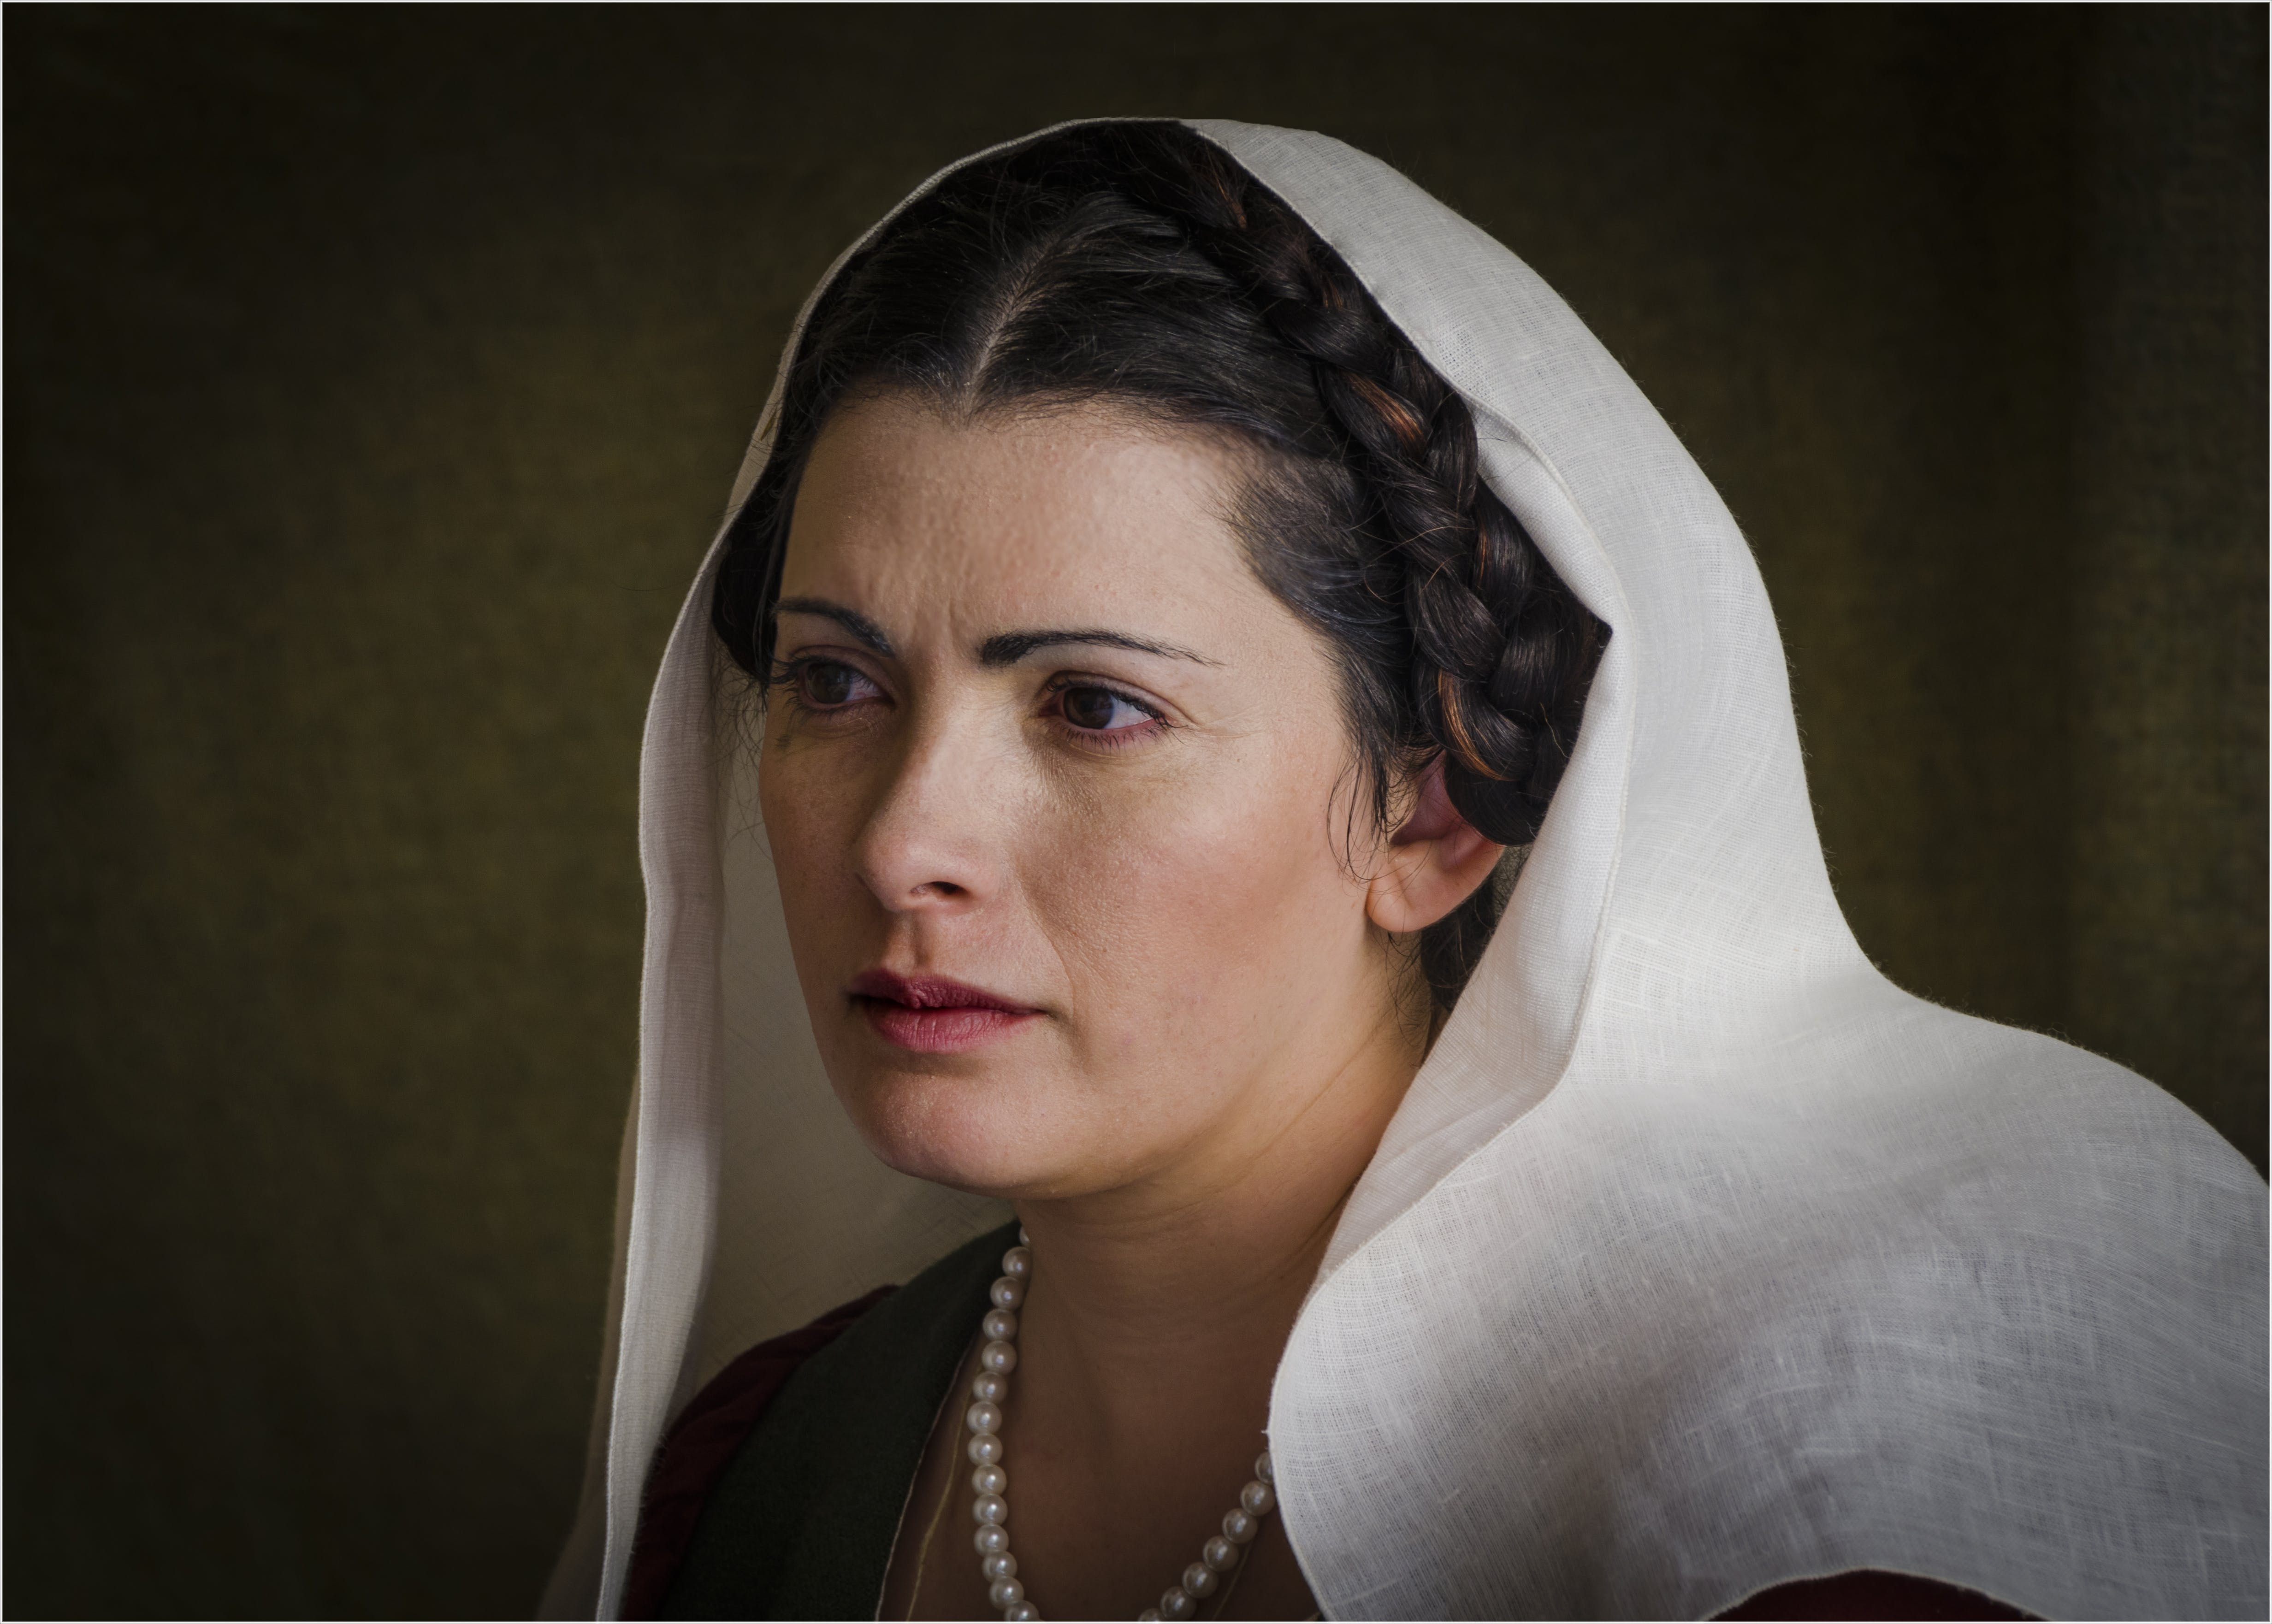 Black Haired Woman Wearing White Veil